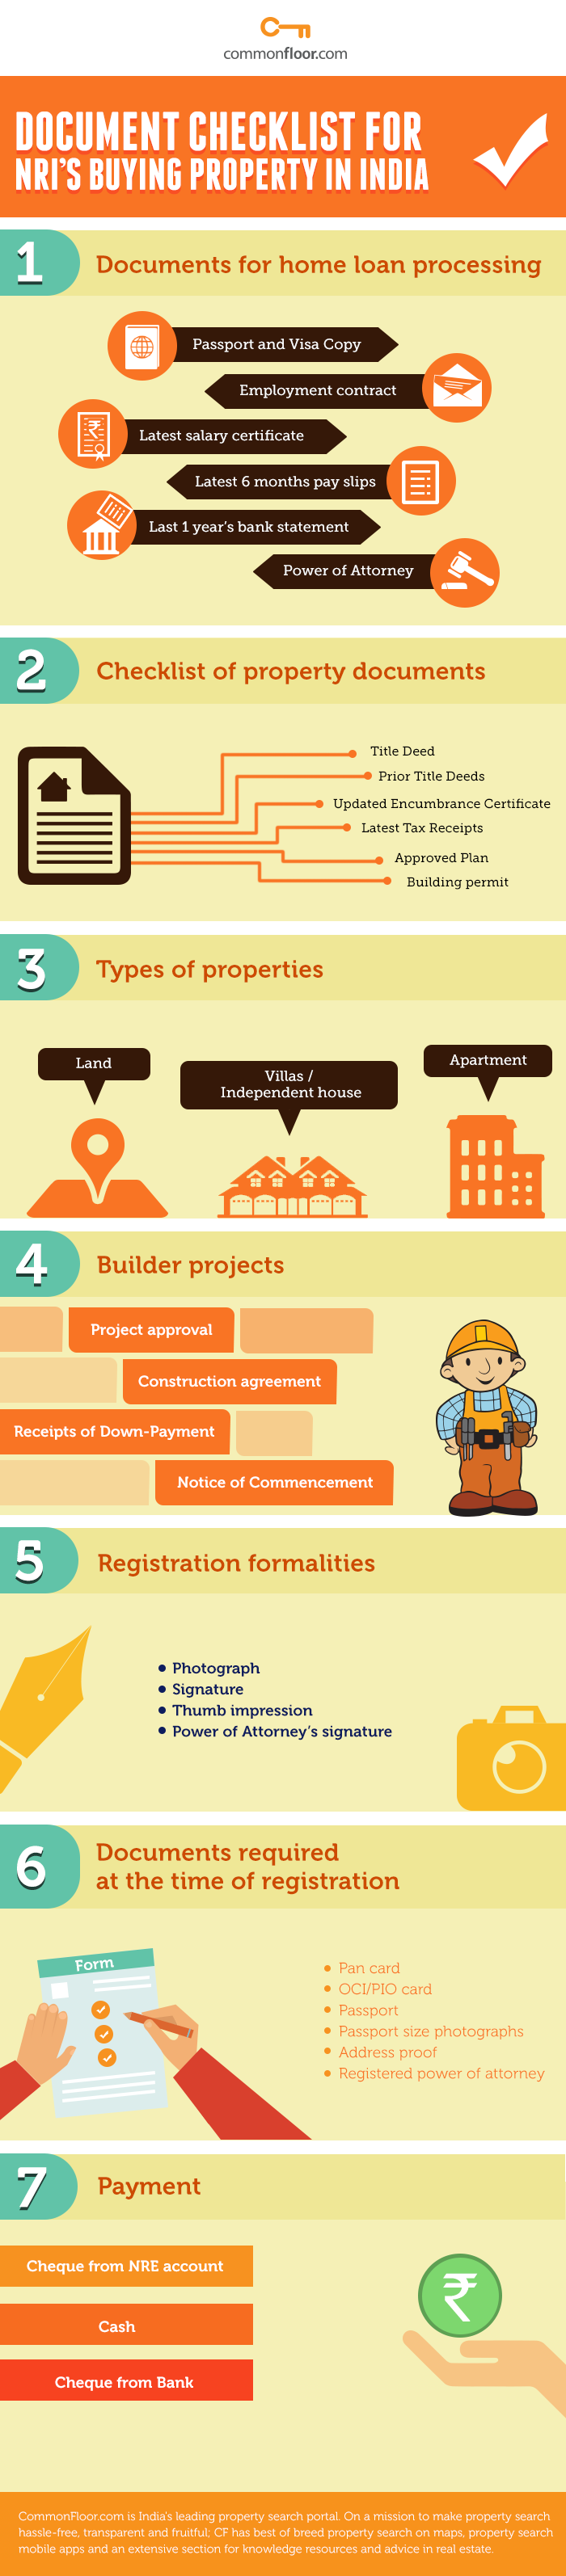 Checklist of documents for NRIs Buying Property in India